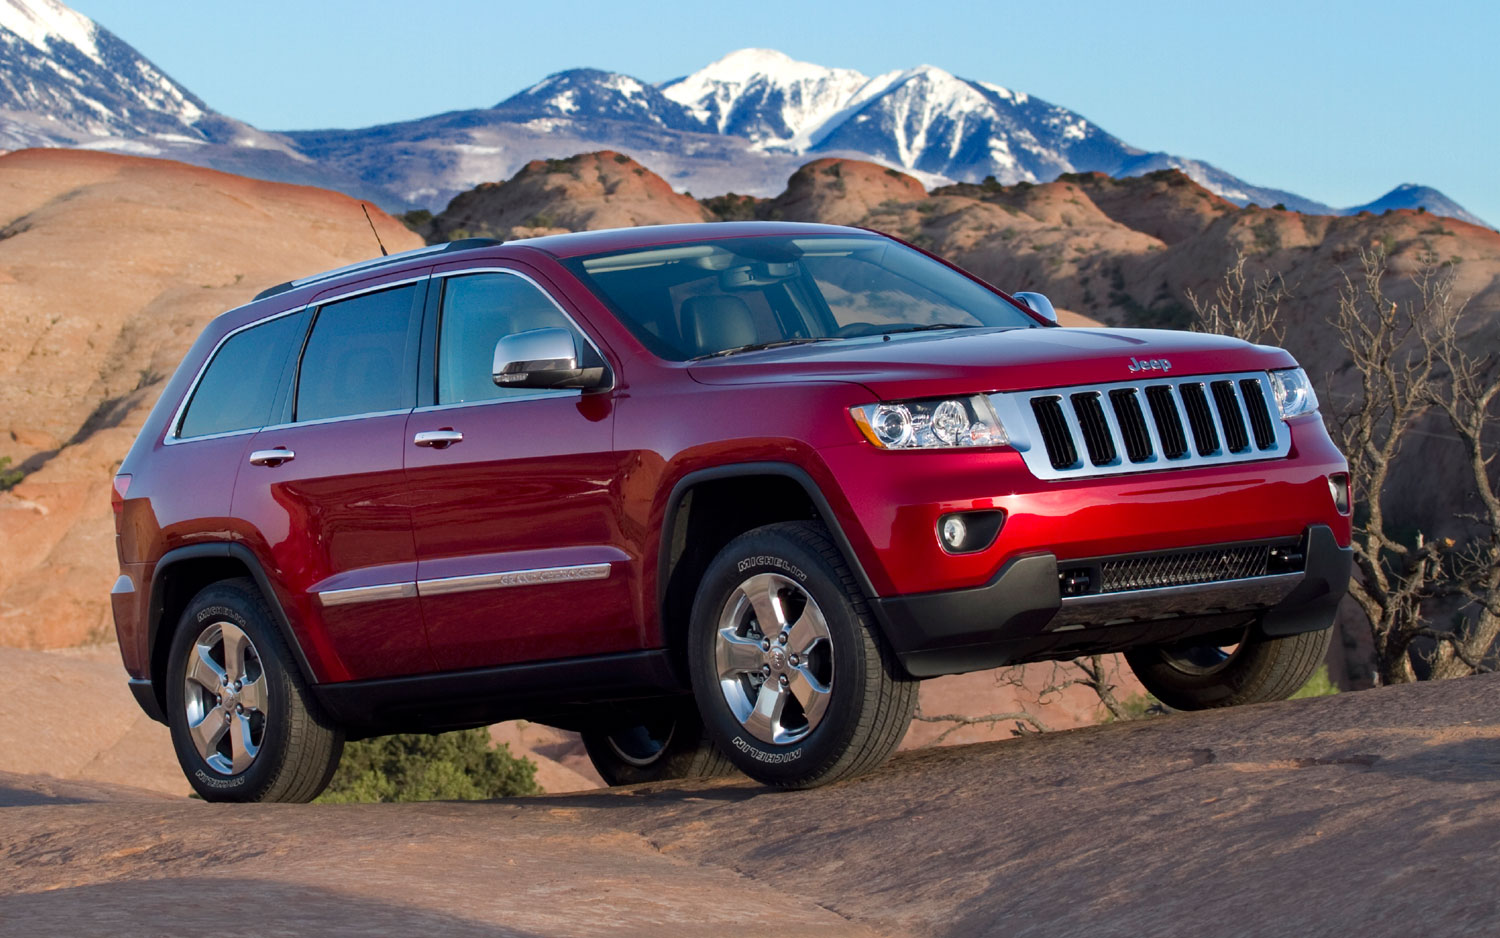 Amazing 2012 Jeep Grand Cherokee Price Slashed By $3220, Other Chrysler Products  Reduced